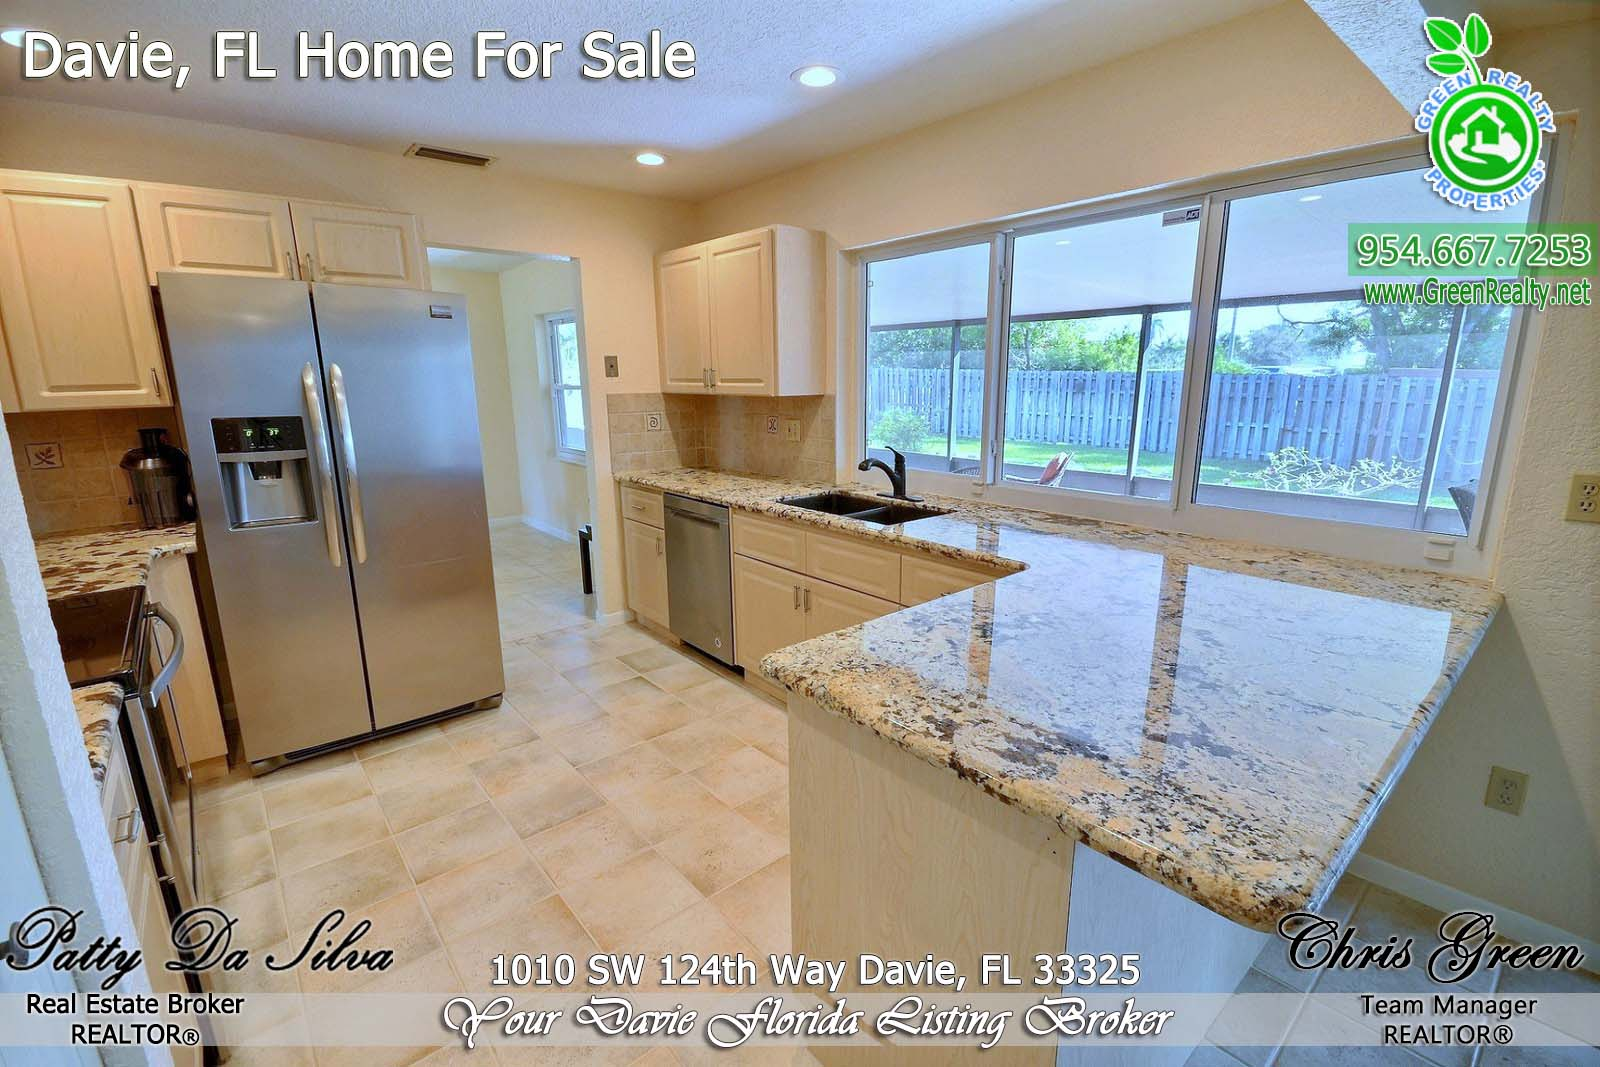 11 Davie Homes For Sale (3)